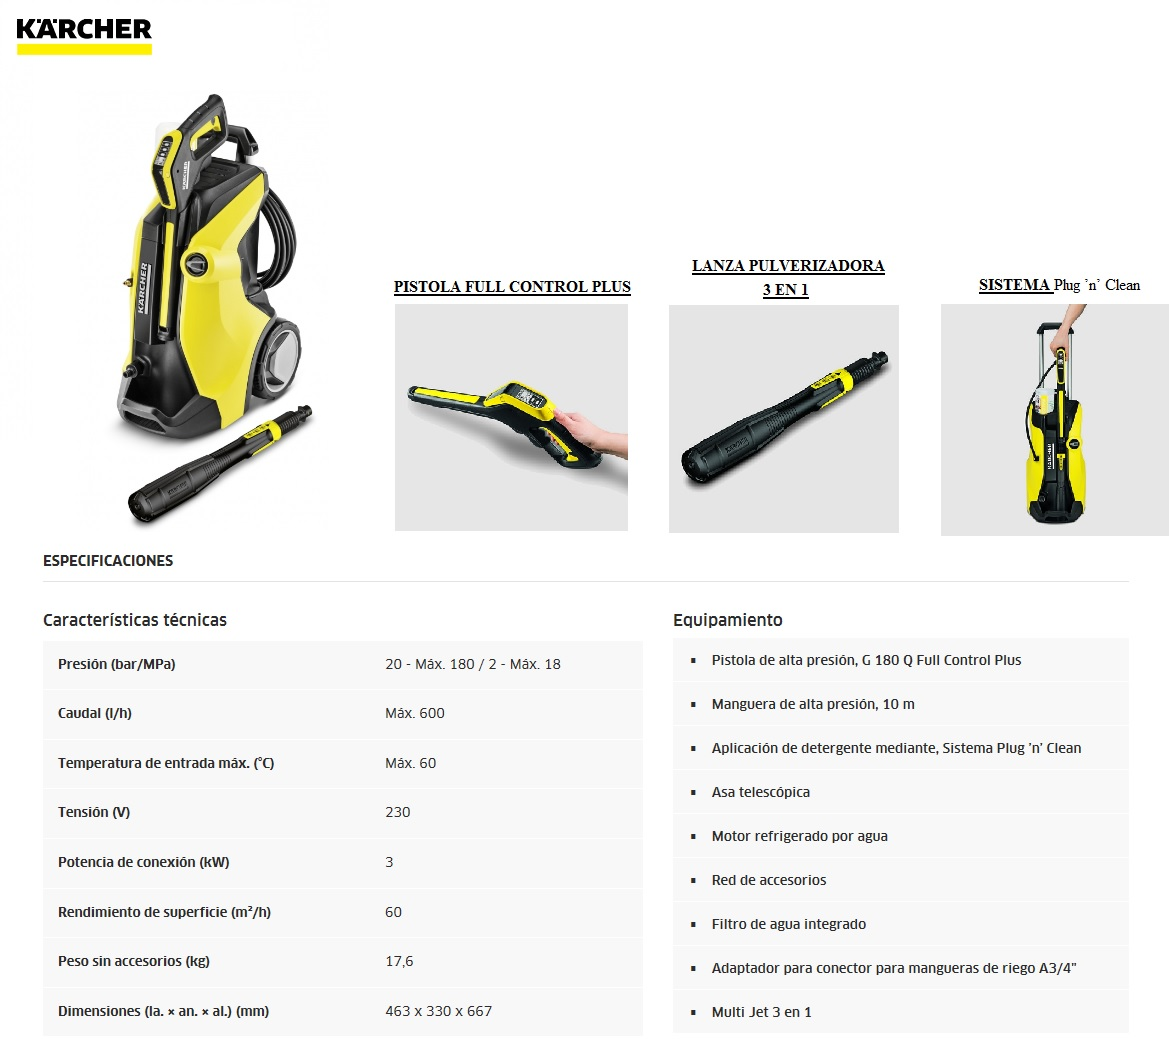 Karcher k7 full control plus comparativa